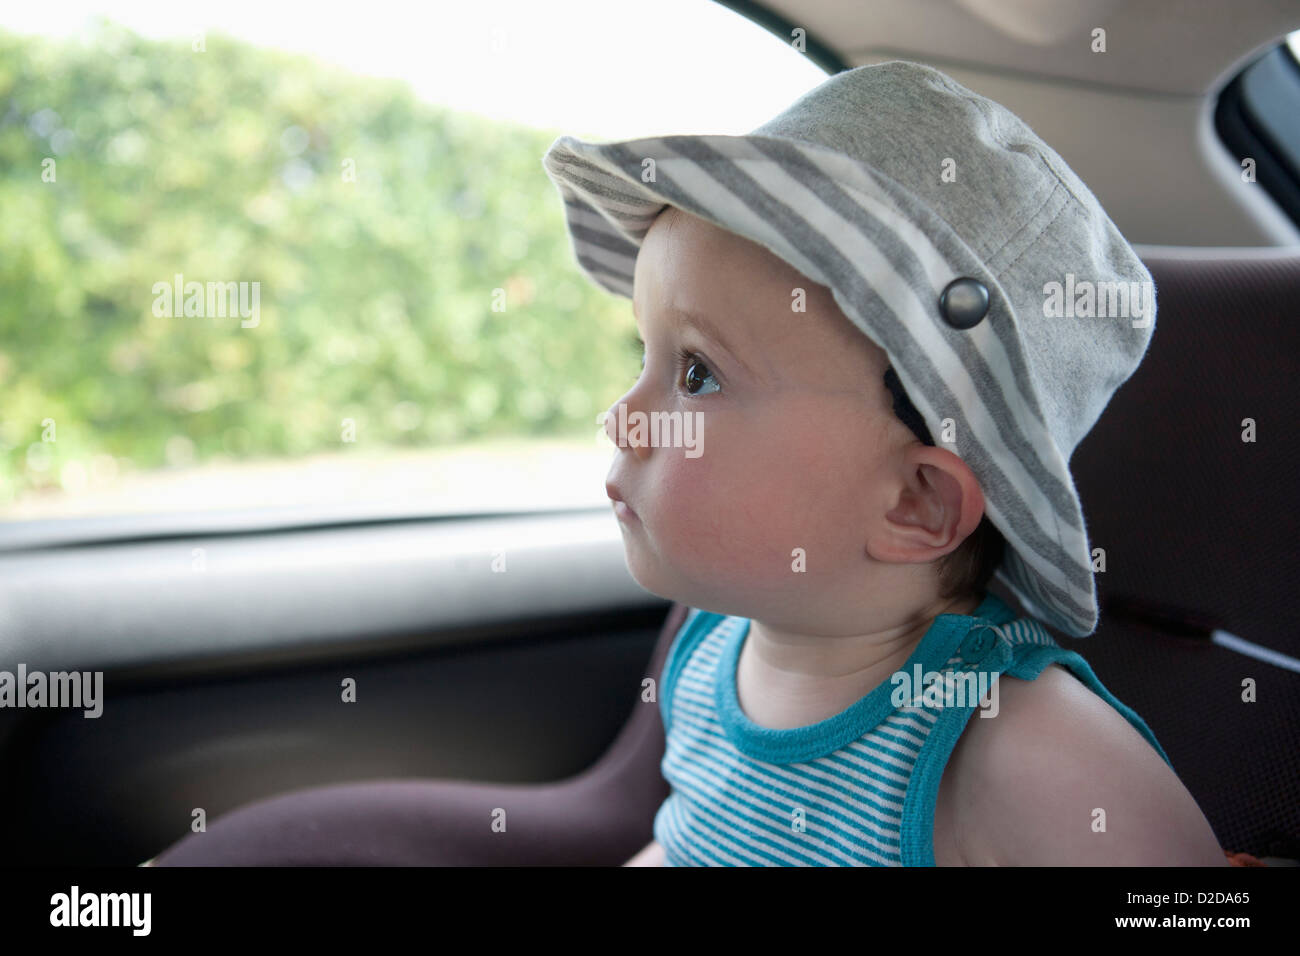 A child anticipating a car ride, sitting in car seat - Stock Image